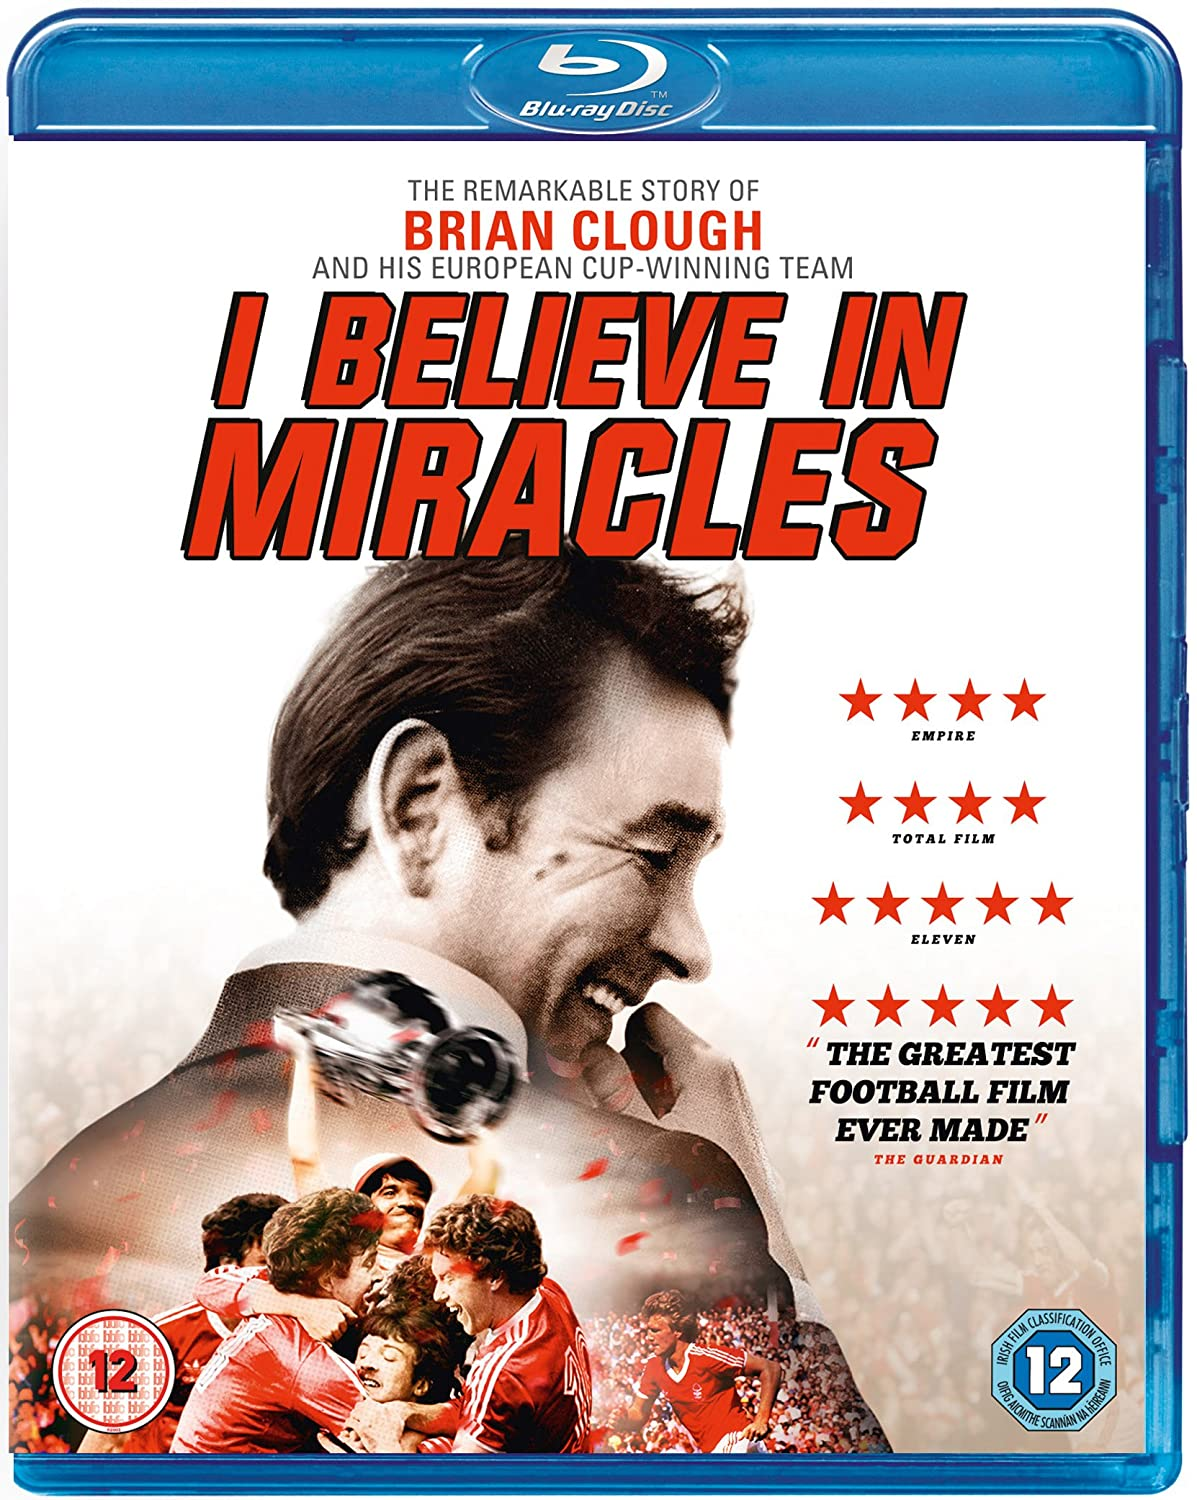 Brian Clough: I Austin Mall Believe Luxury goods 2015 Blu-ray in Miracles